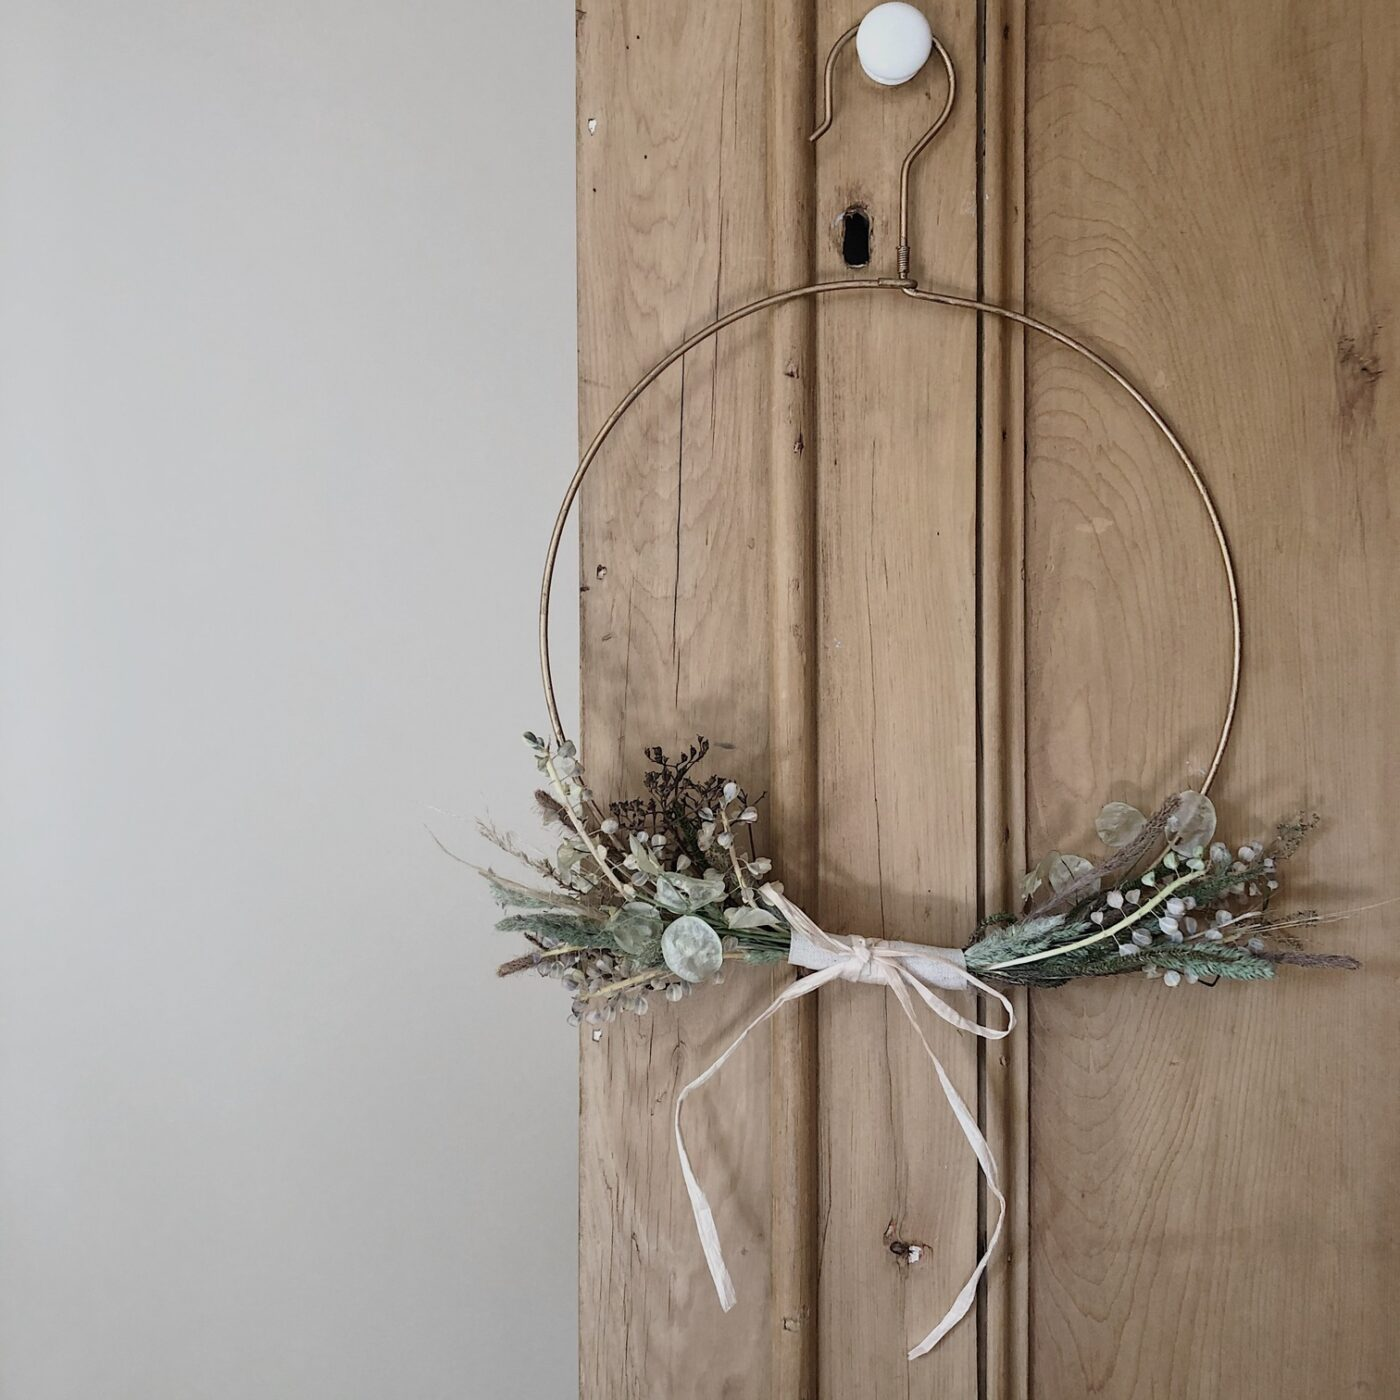 How to Make a Rustic Dried Flower Wreath